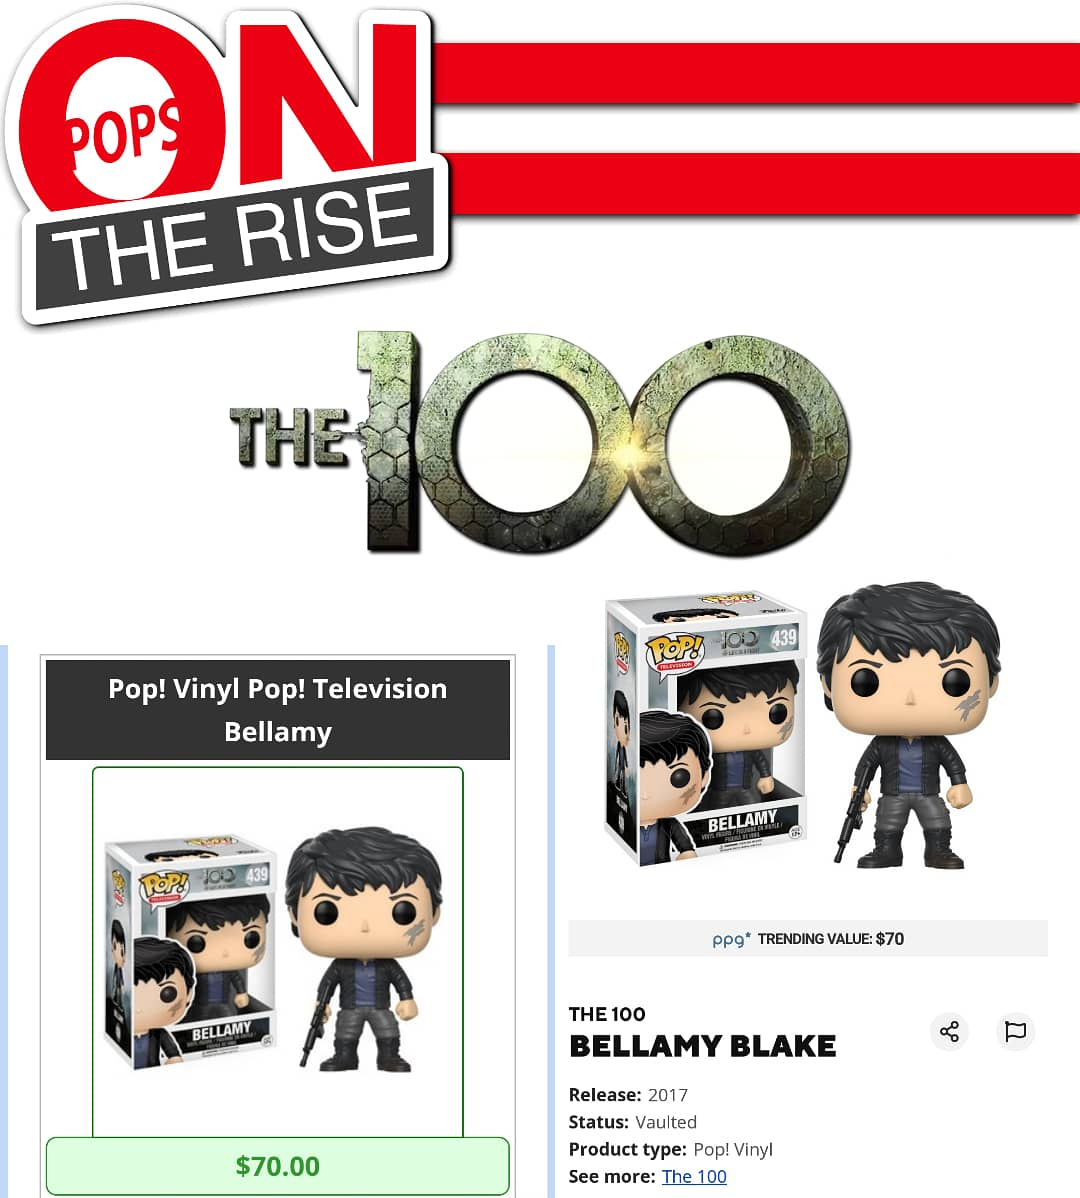 #Popsontherise The 100: Bellamy Current Value: $70 Release year: 2017 . A post-apocalyptic show, the 100, Juvenile criminals come frm space back to earth as they battle to survive on this newly altered planet Although Clarke is the strong leader, Bellamy is the fearless& recklesspic.twitter.com/dh2pODO6L4